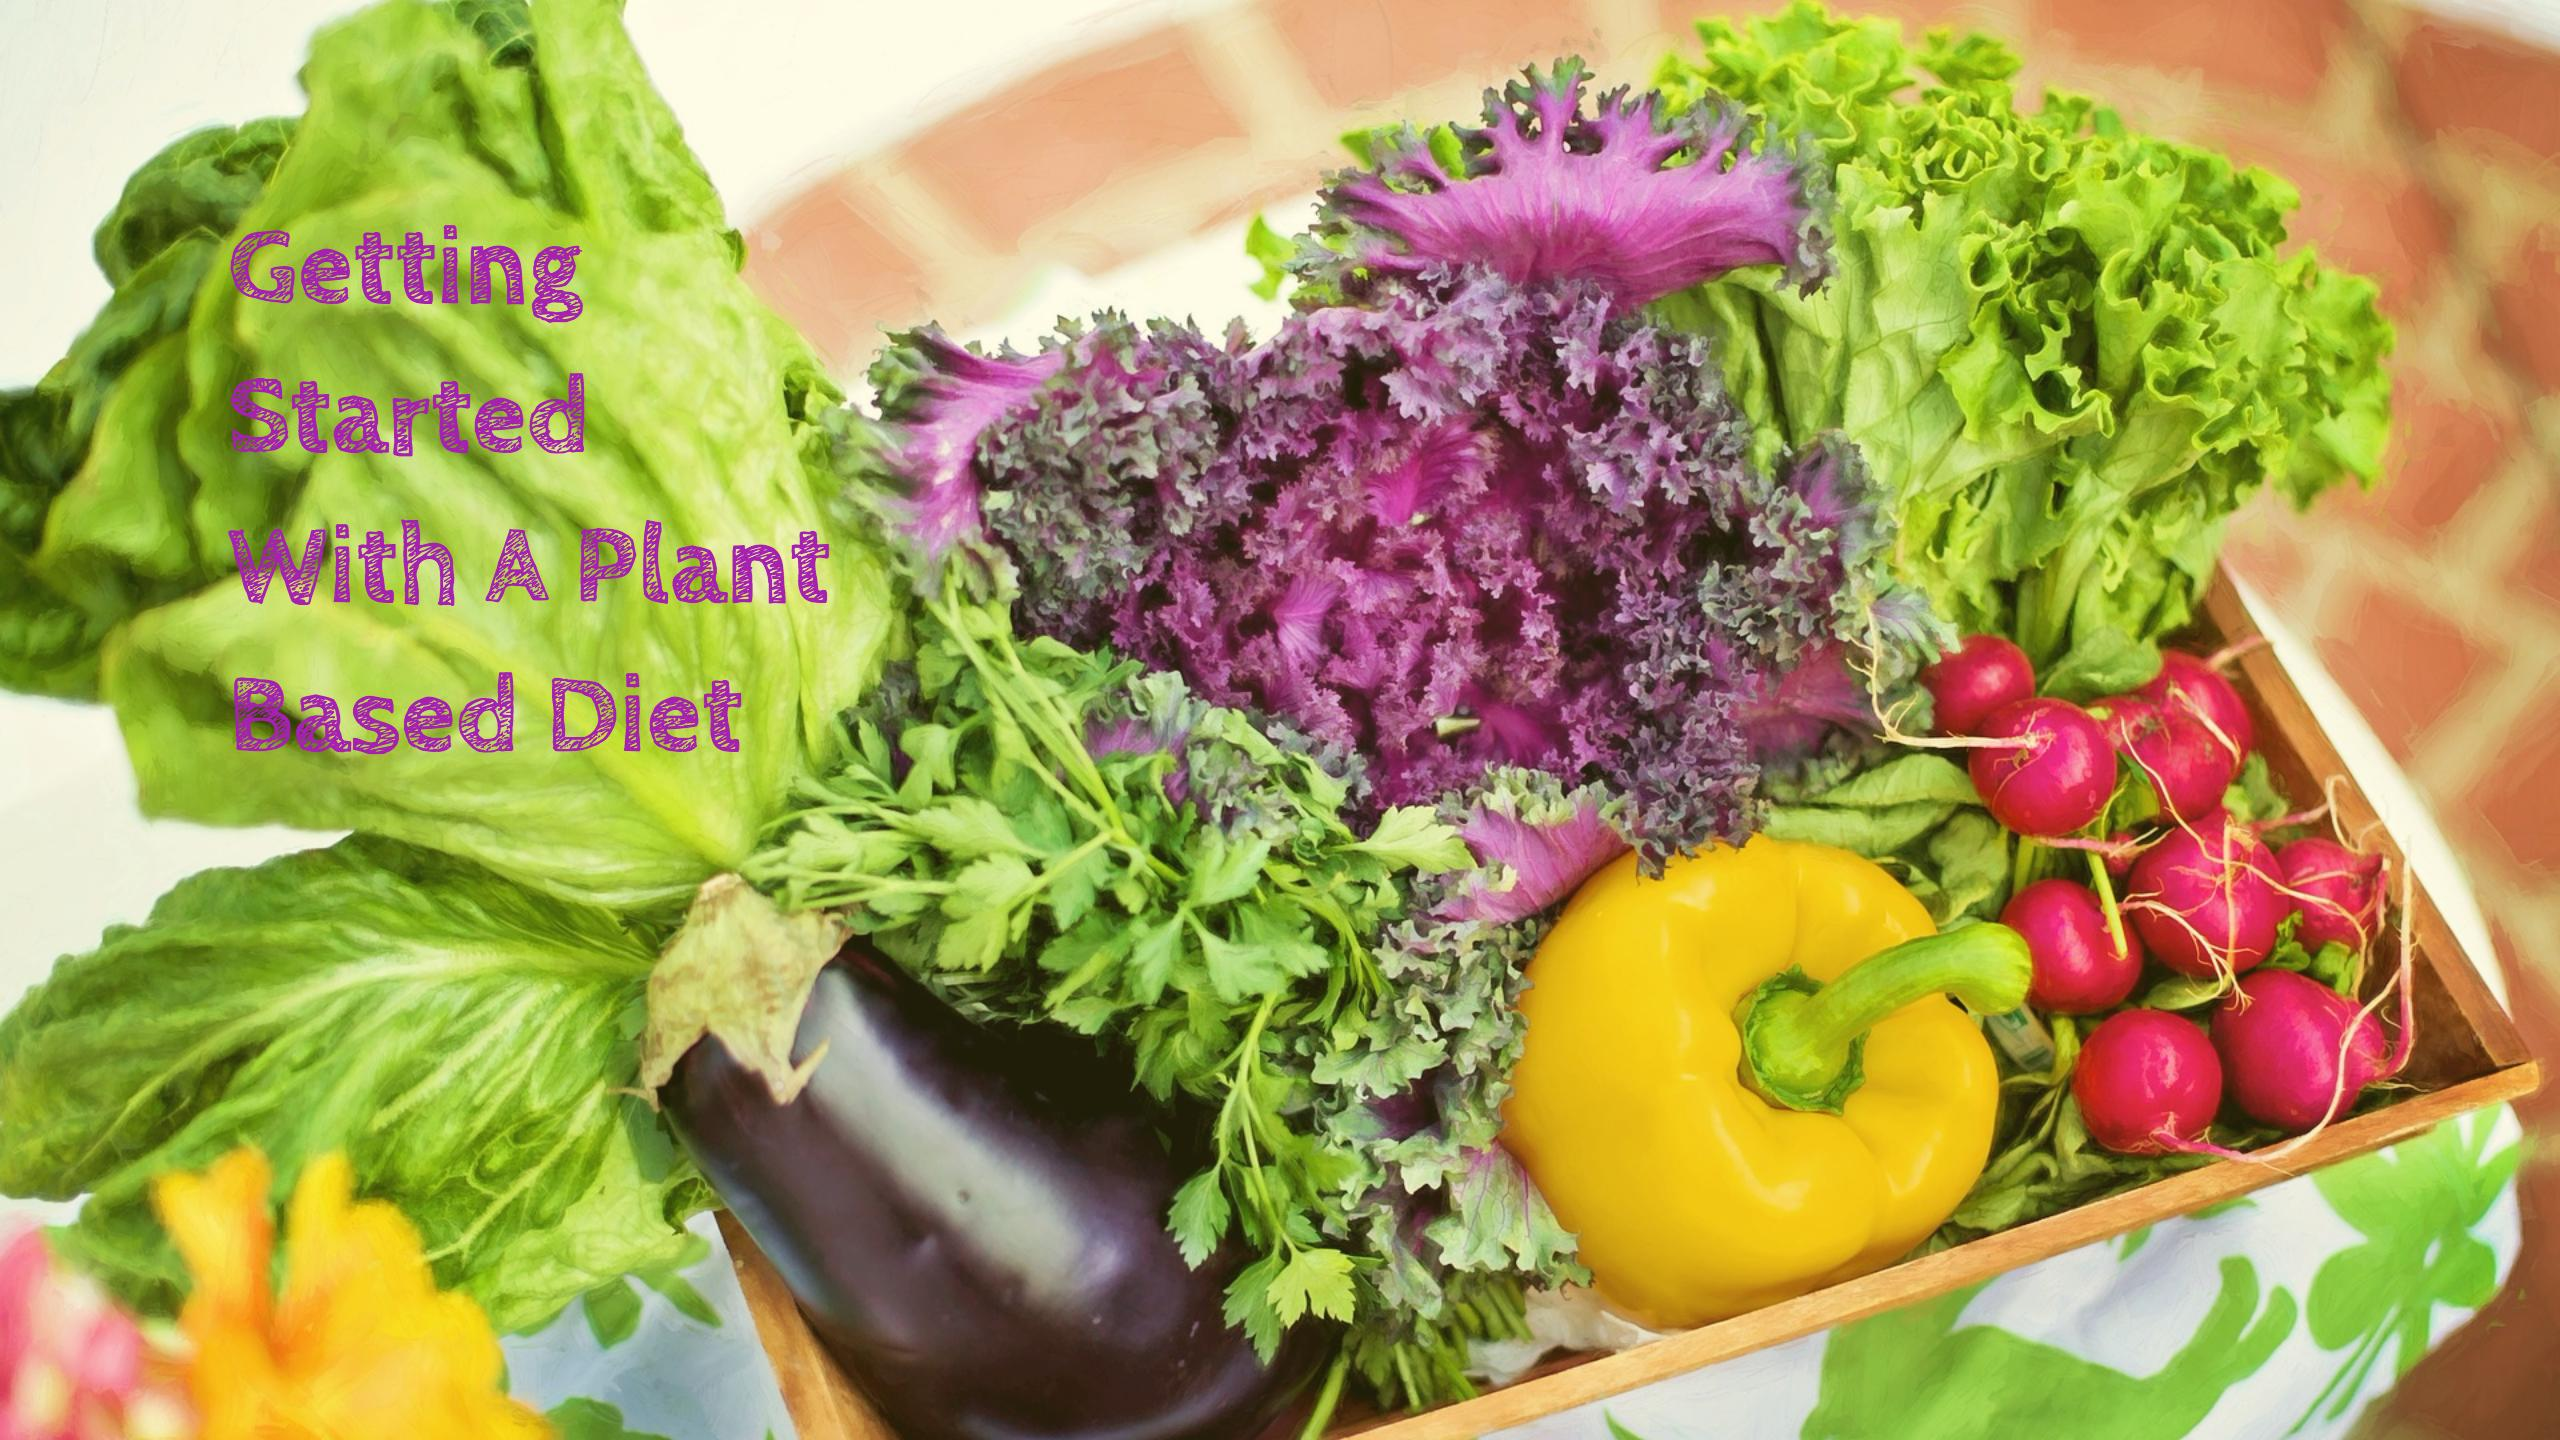 Getting Started with a Plant-Based Diet? Don't Worry